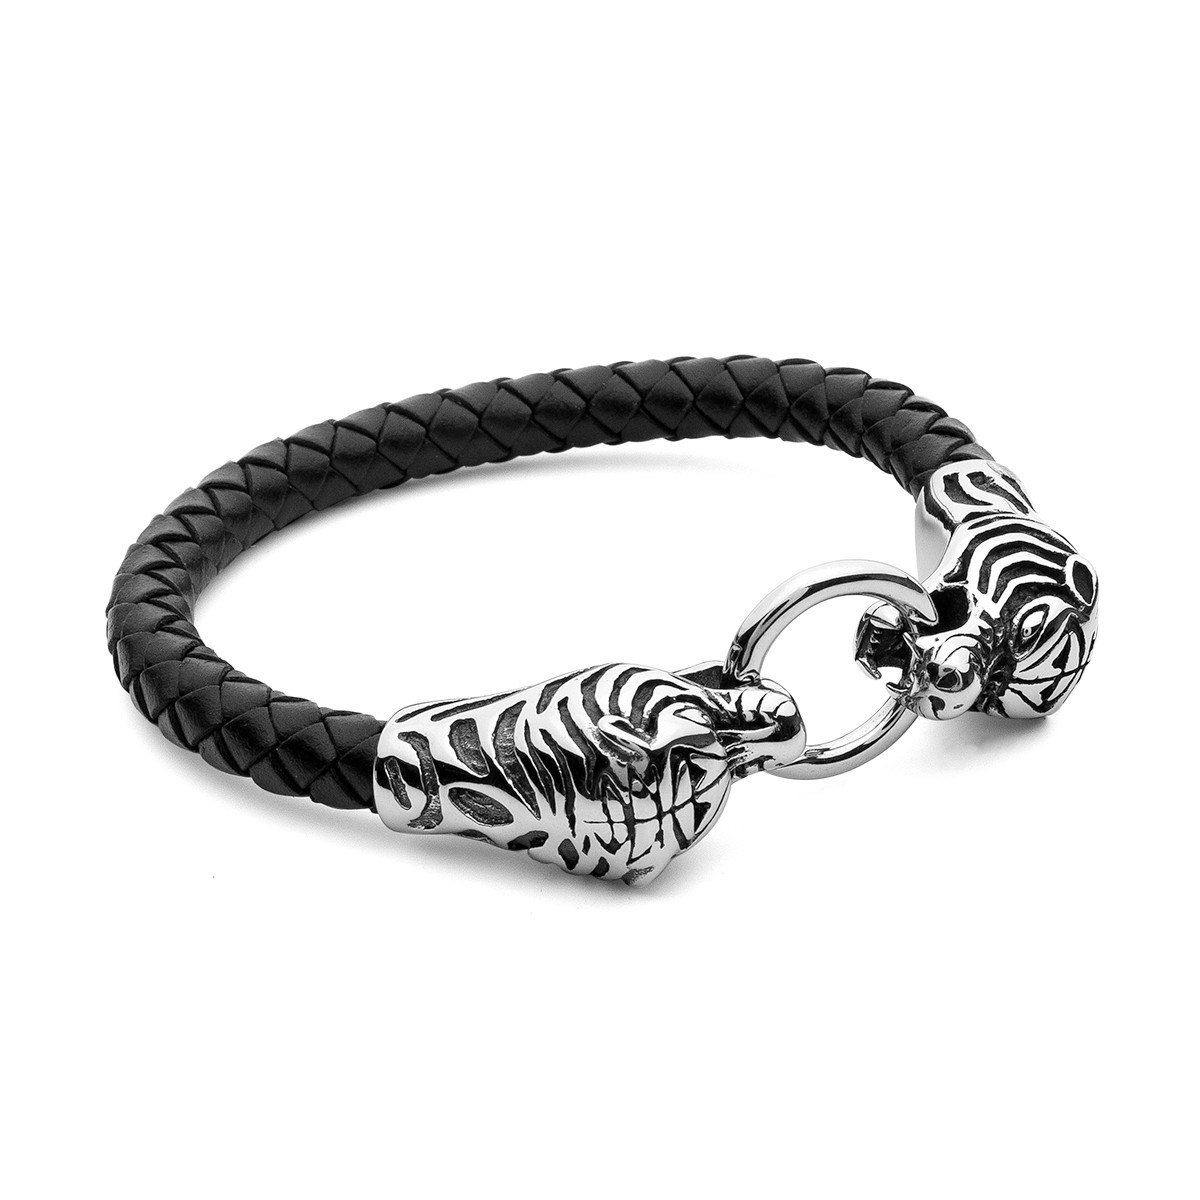 TIGER BRACELET, STAINLESS STEEL - MODEL 030